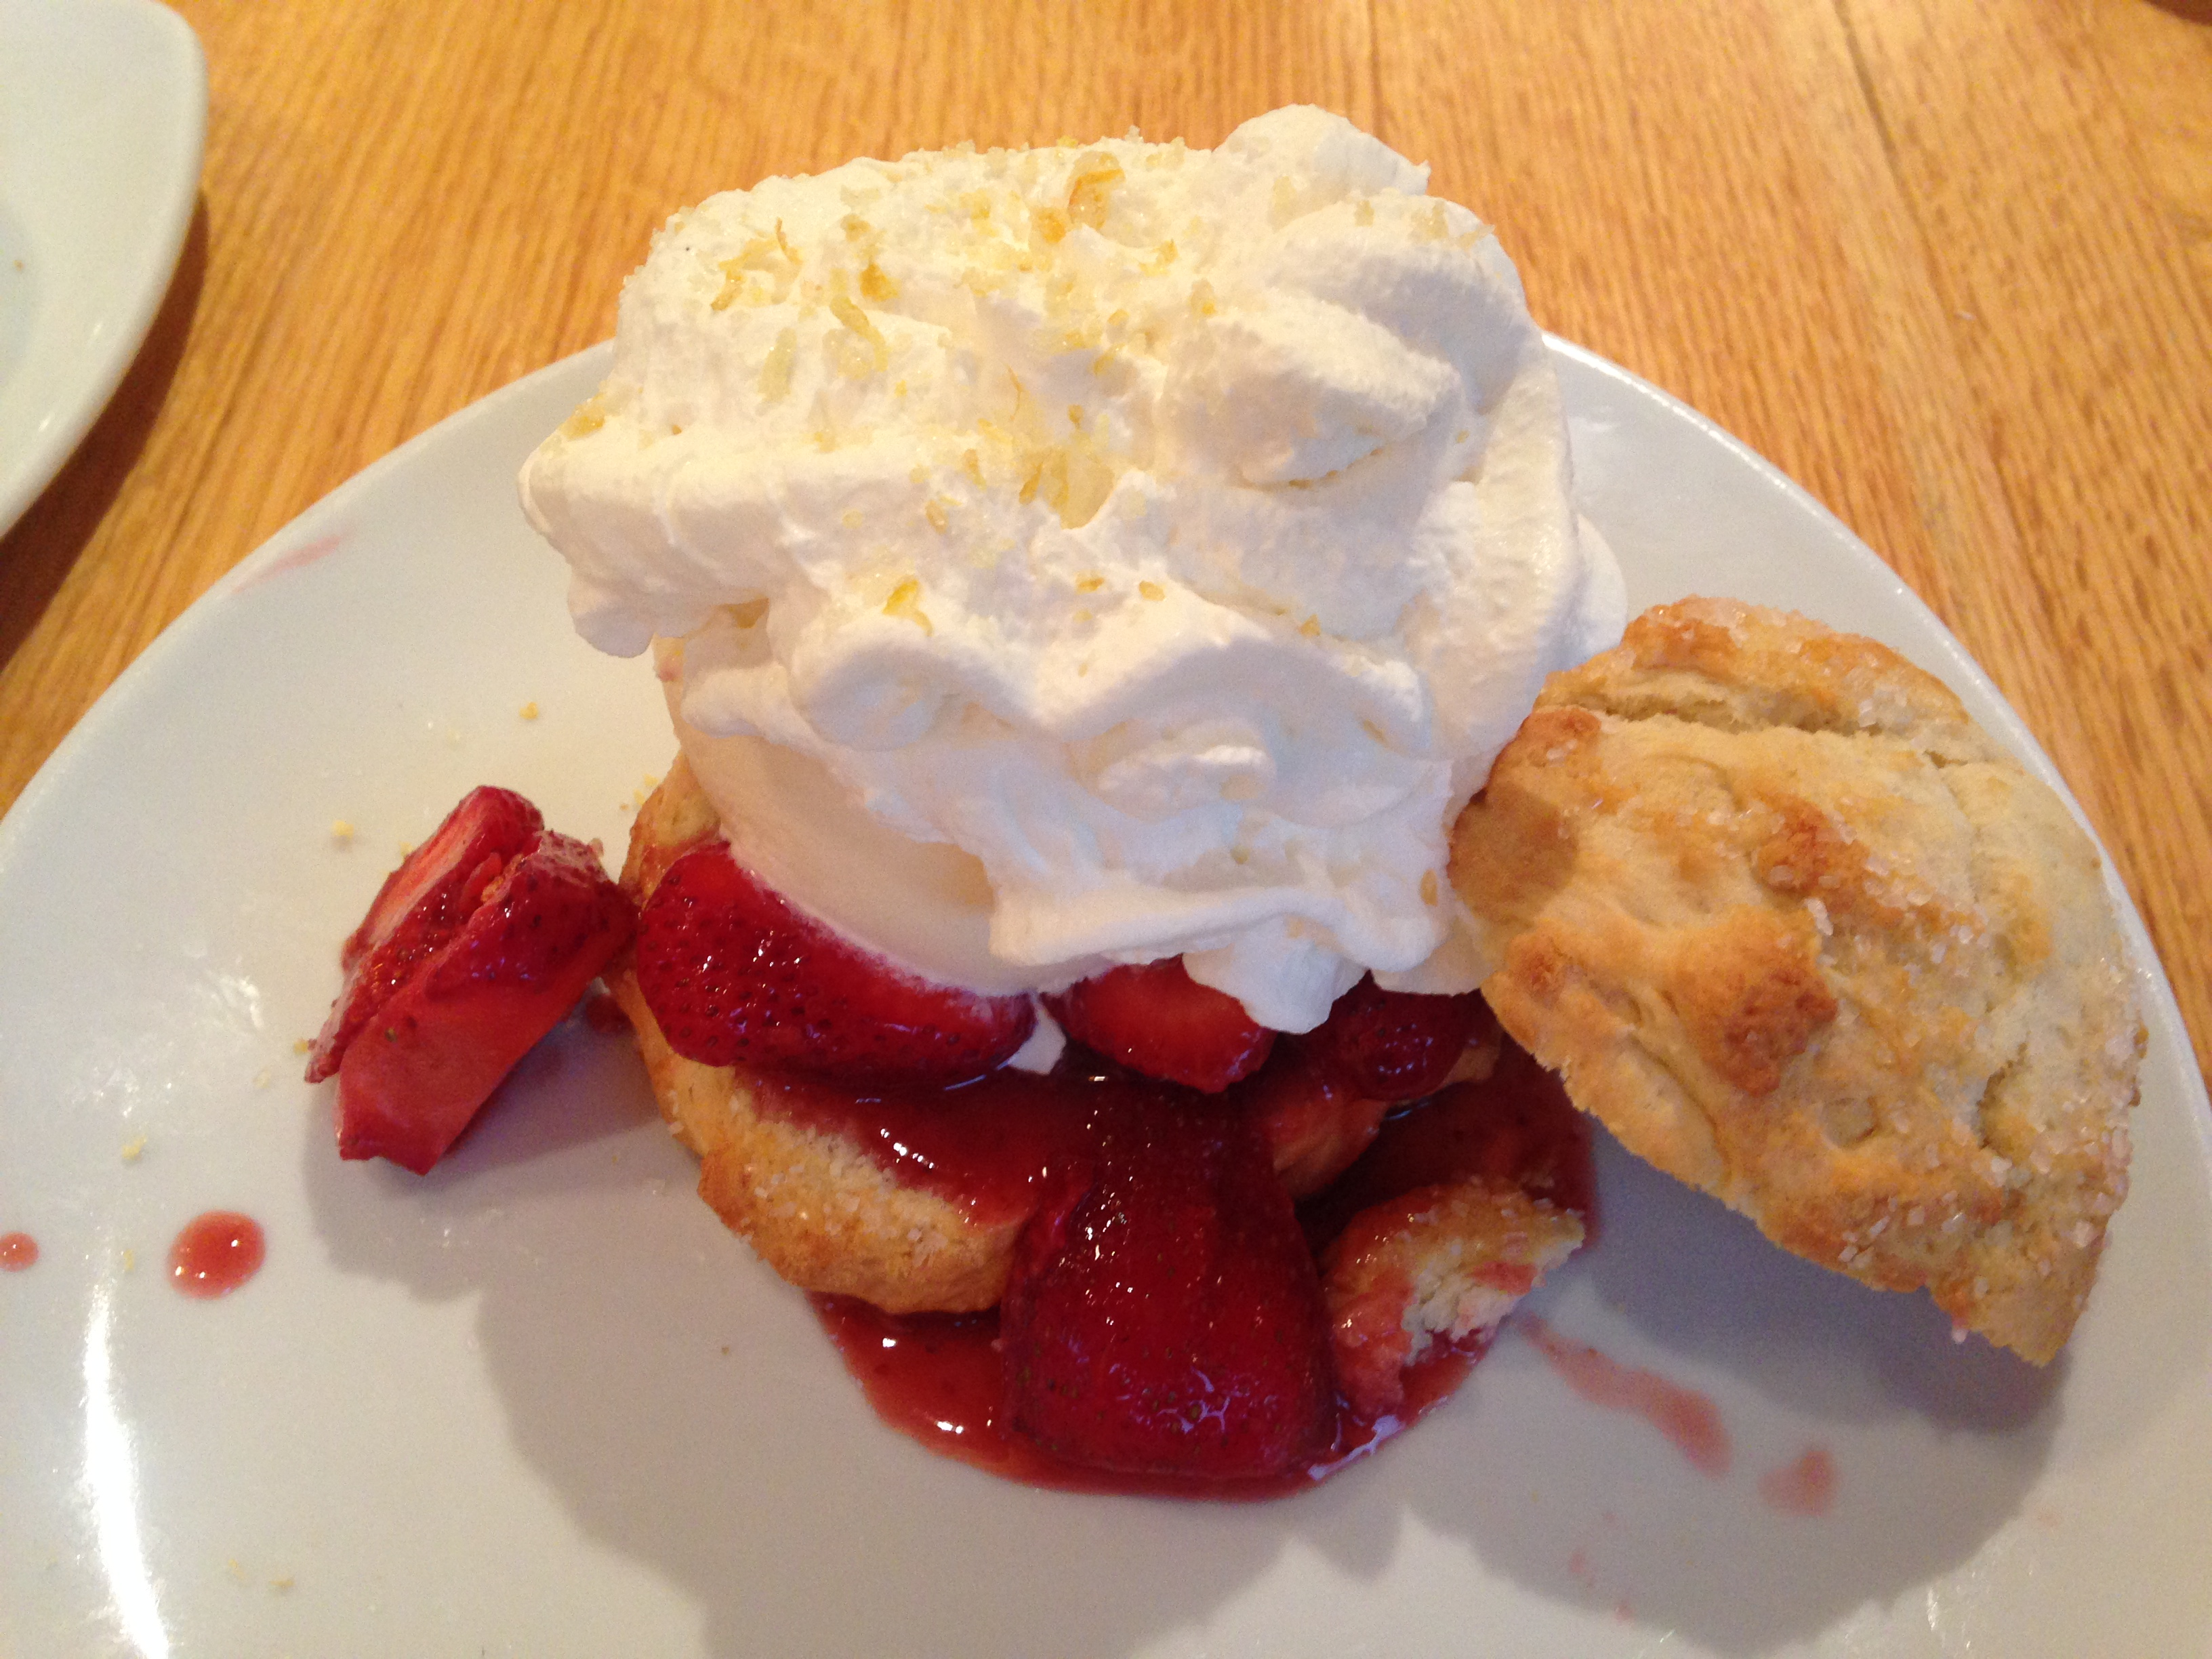 Strawberry Shortcake California Pizza Kitchen